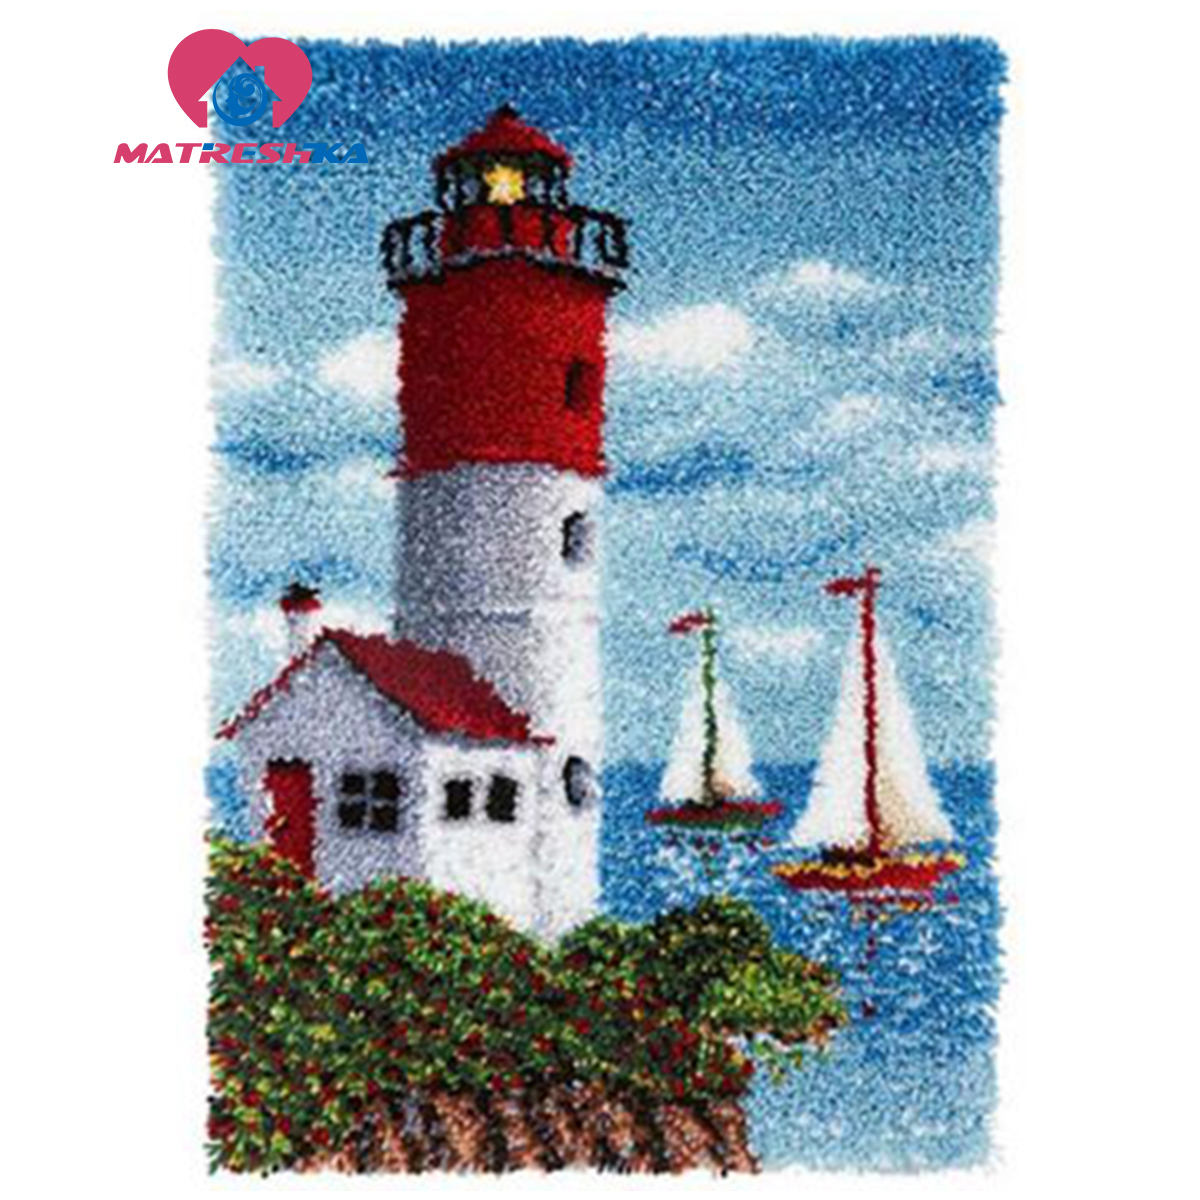 needle for carpet embroidery landscape lighthouse latch hook rug kits big size do it yourself needlework